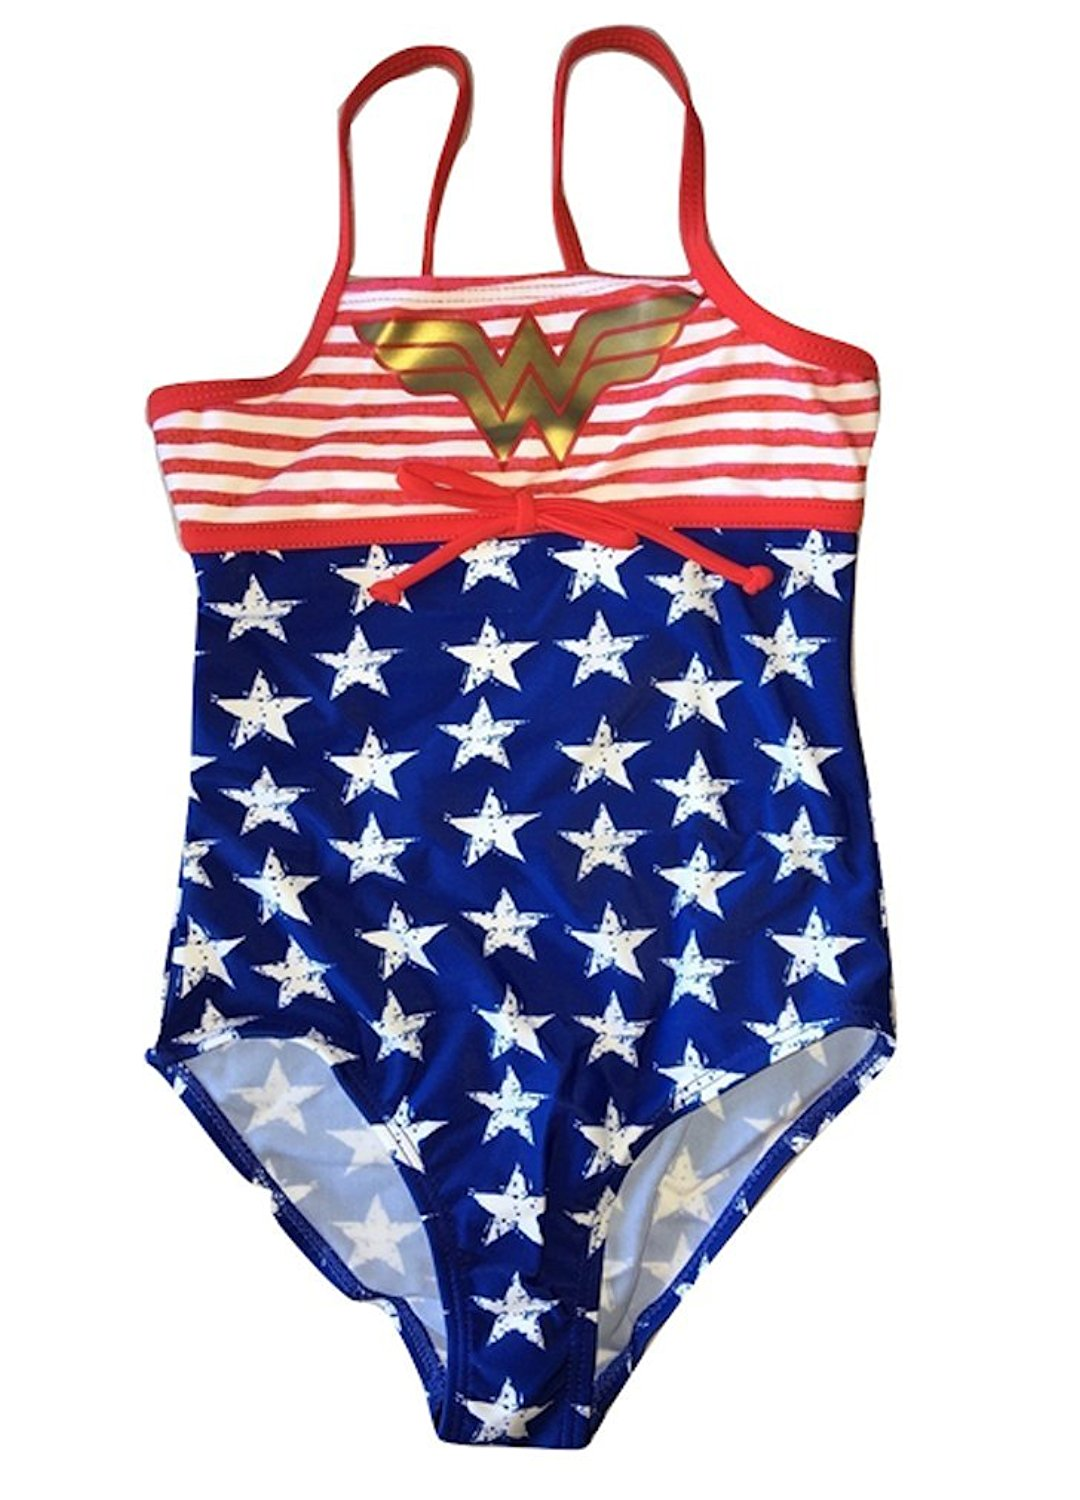 69b2741de9e93 Get Quotations · In Gear Girls Wonder Woman Sport One Piece Swimsuit Stars  and Stripes in sizes 4-